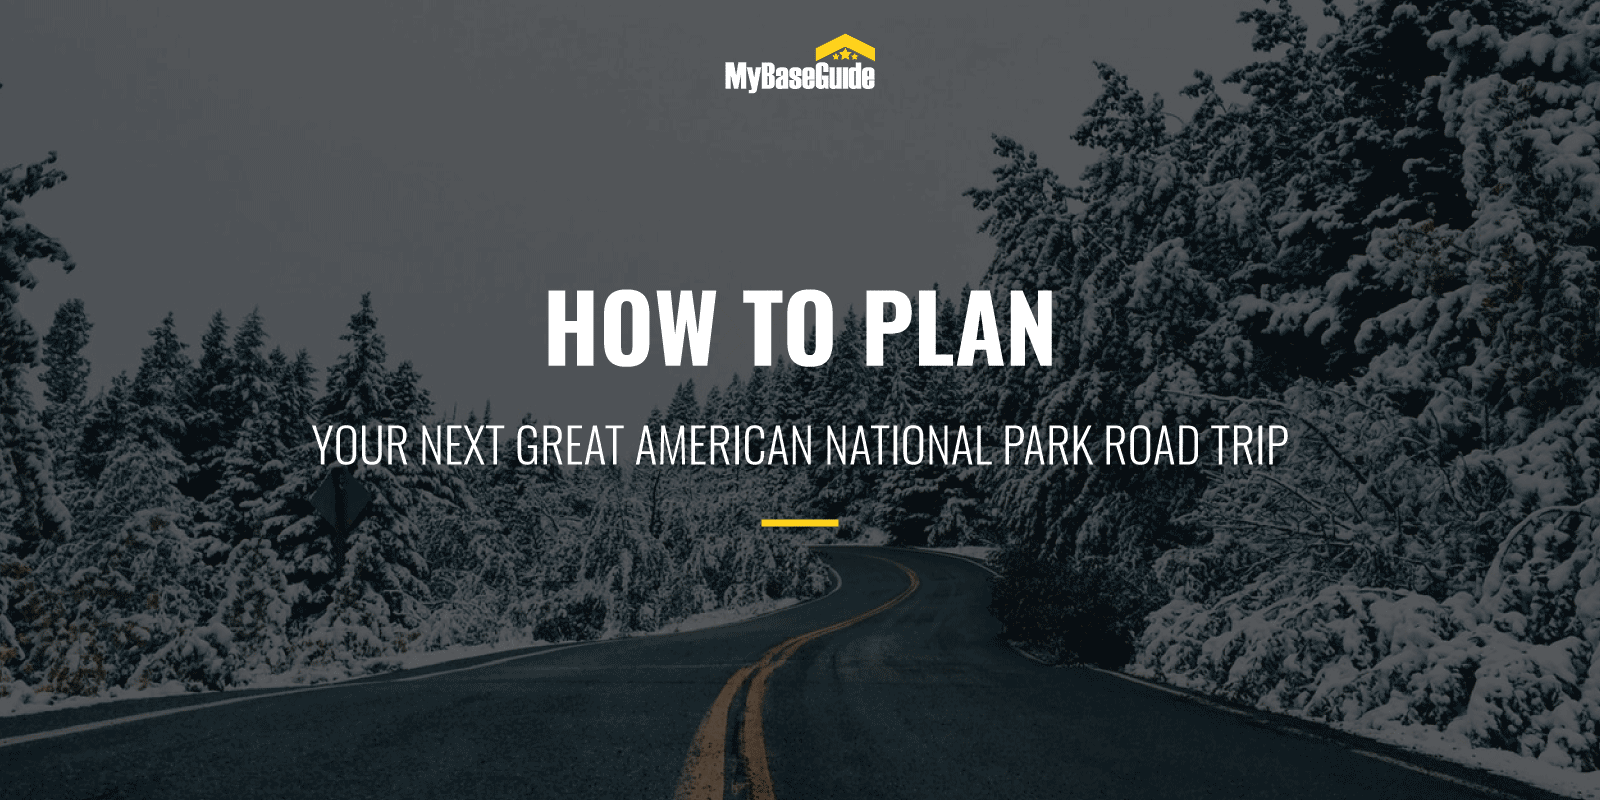 How to plan your next great american national park road trip